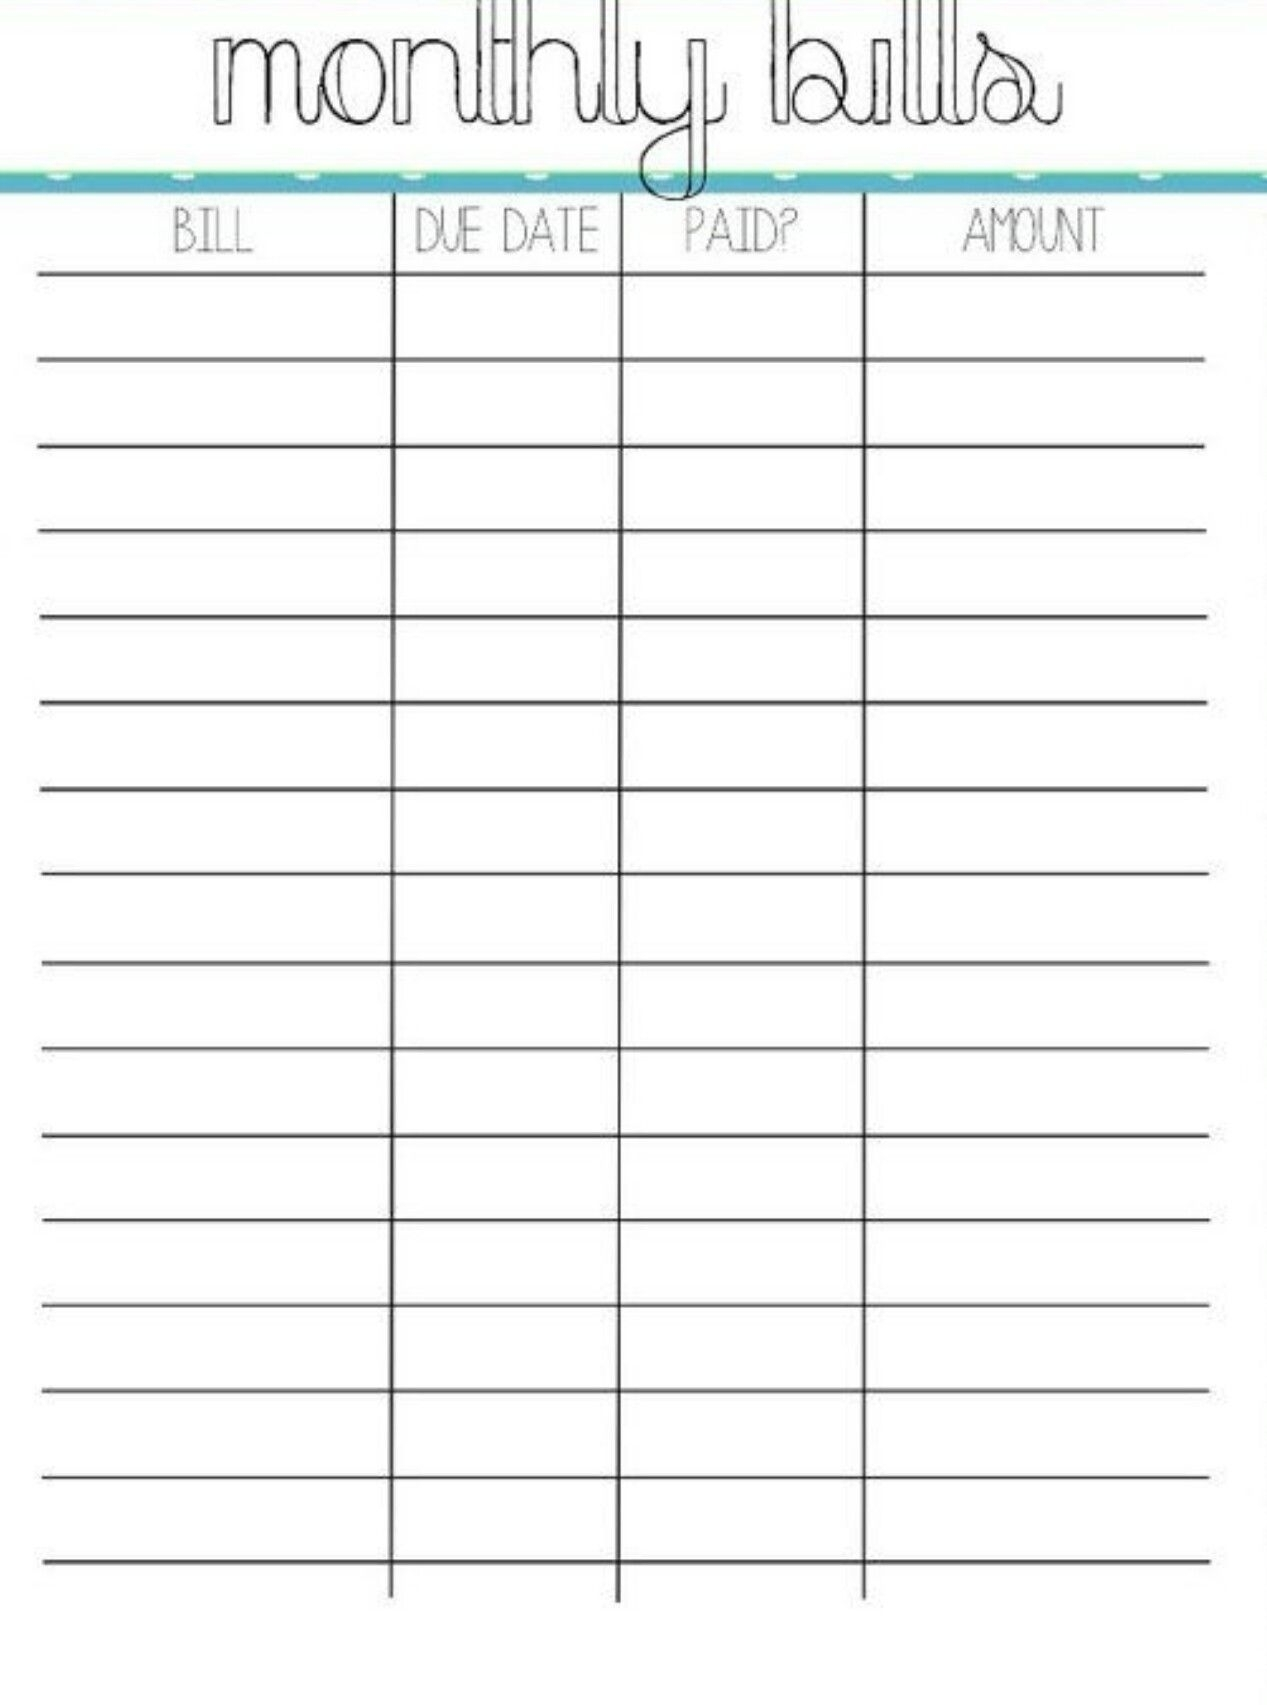 Pincrystal On Bills | Organizing Monthly Bills, Bill within Printable Blank Paying Bills Organizer